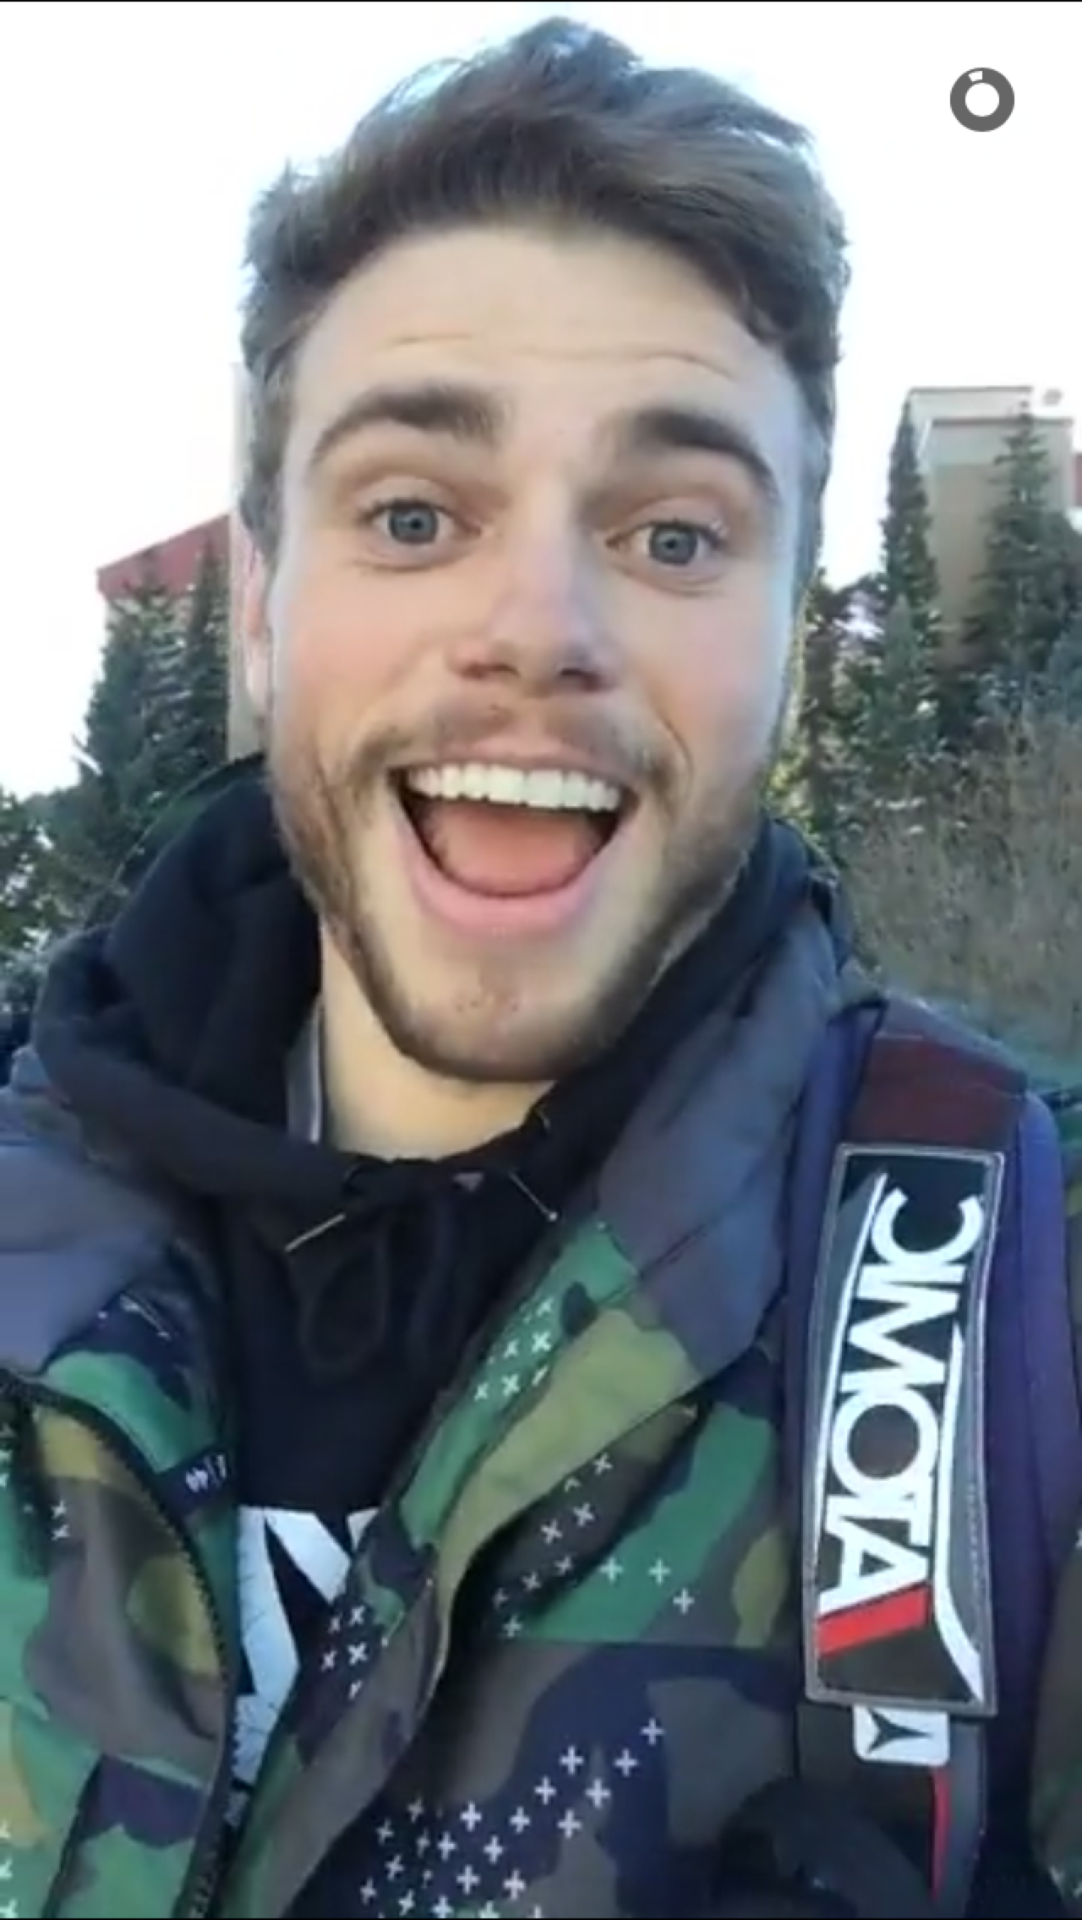 Skier Gus Kenworthy Has a Boyfriend After Coming Out as